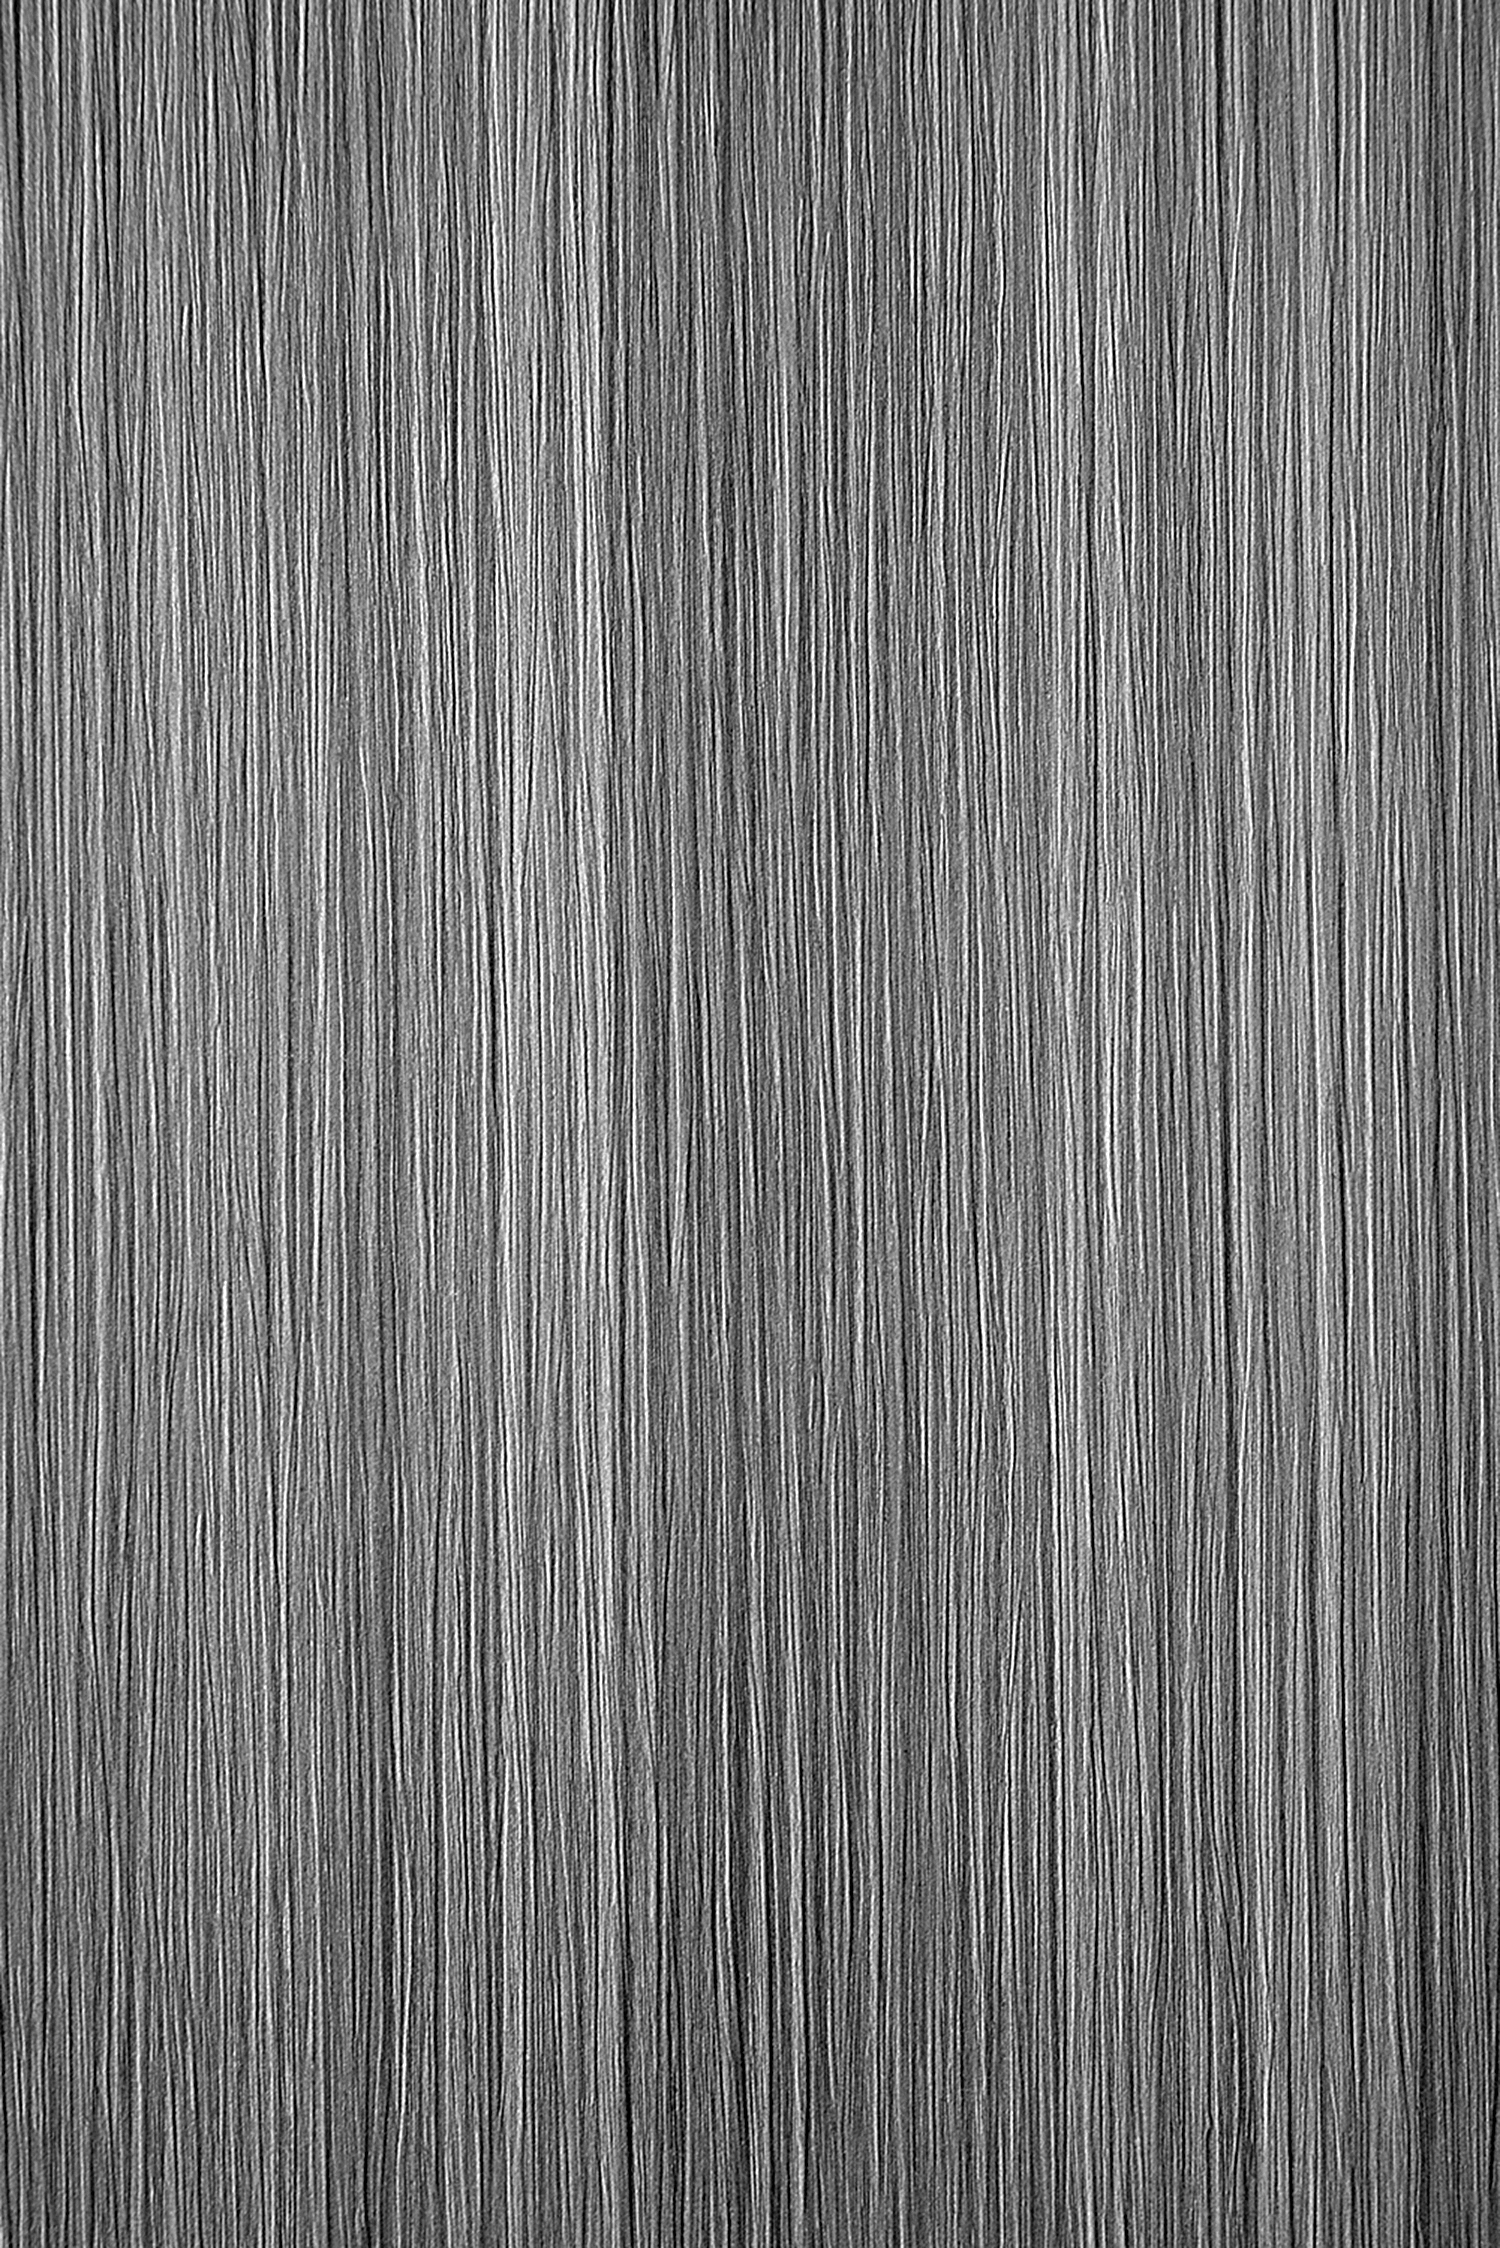 Real Plywood Vray Material Texas Cascade